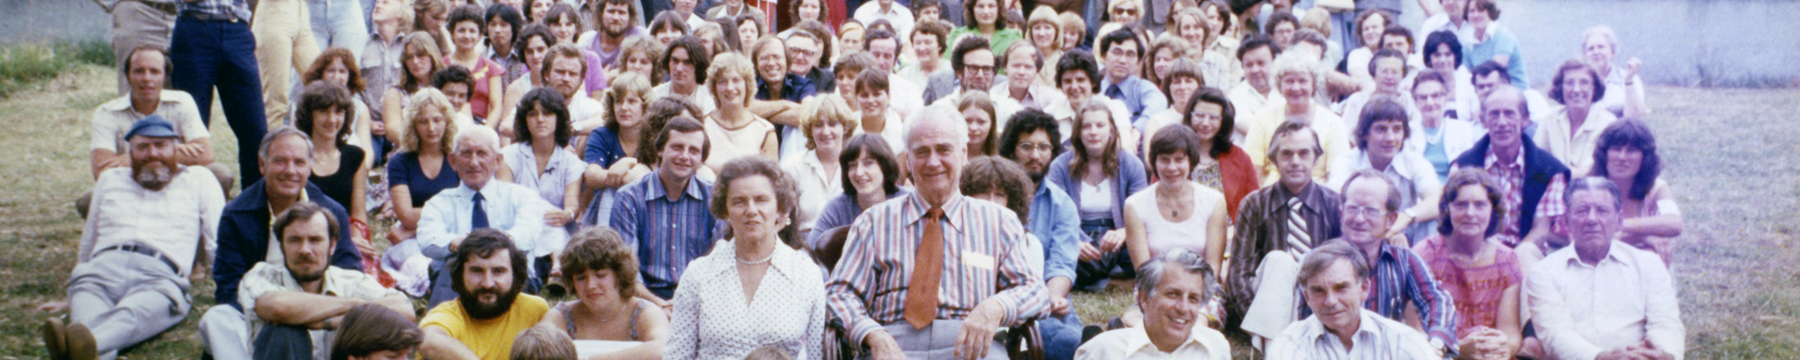 Staff photo from 1980s